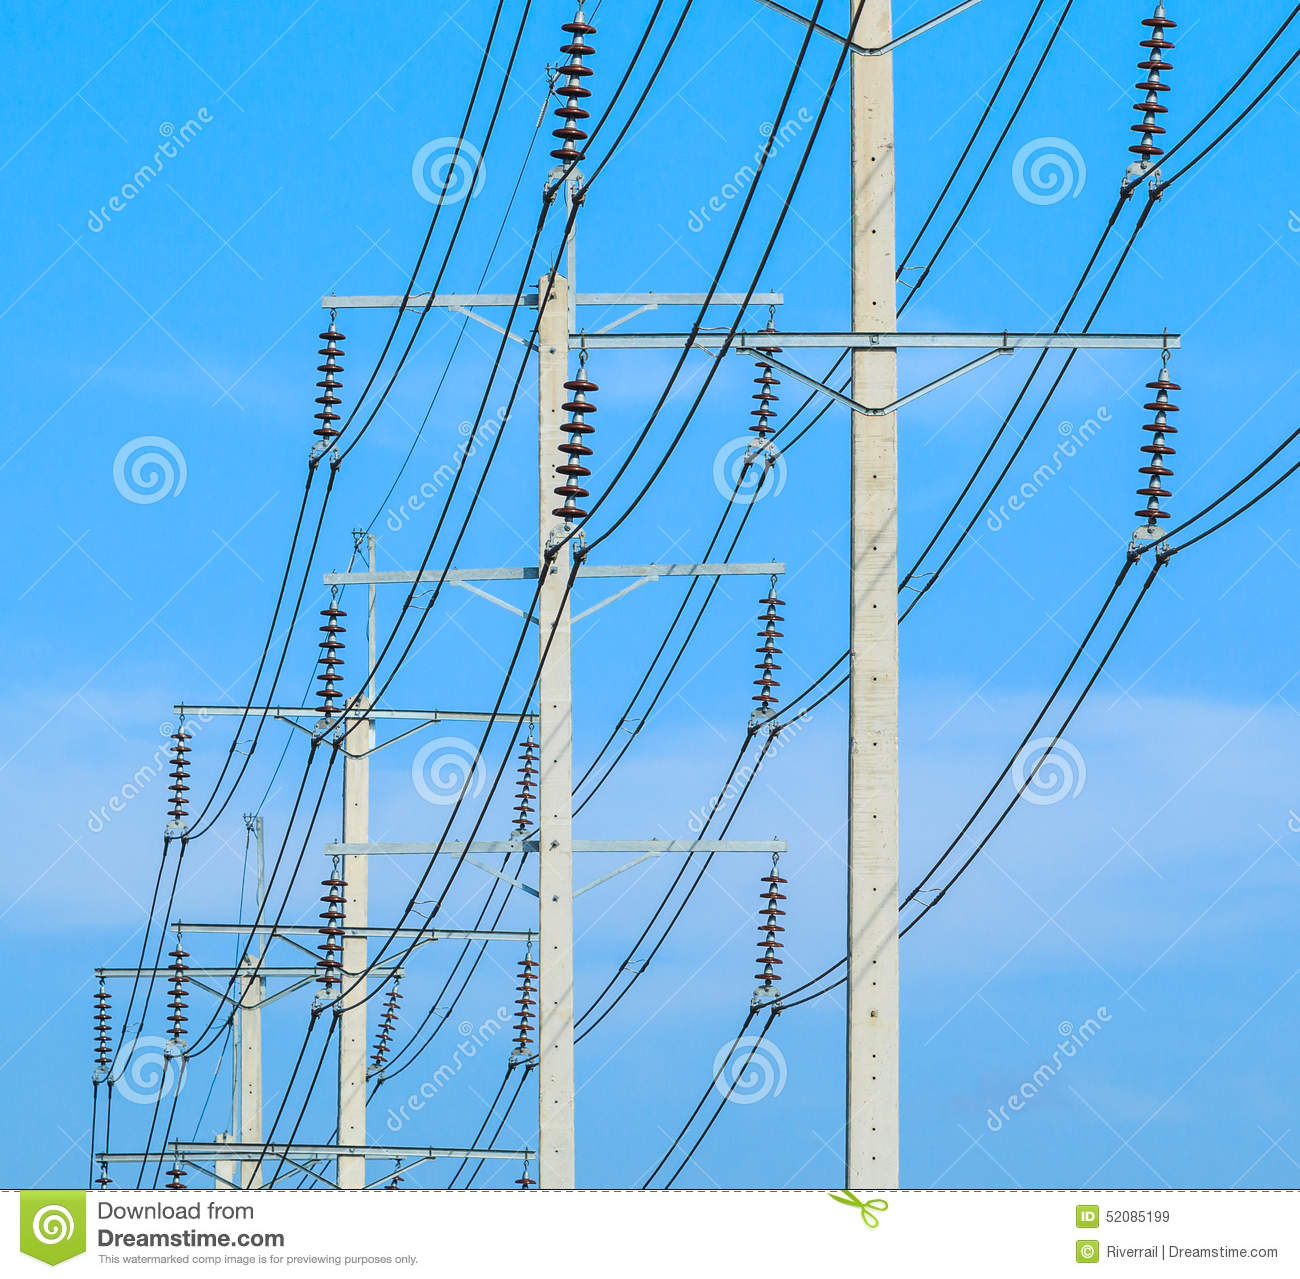 Wire Post Pole Wiring Diagram Building At High Voltage Electrical Stock Photo Image 52085199 Office Power Poles Barn